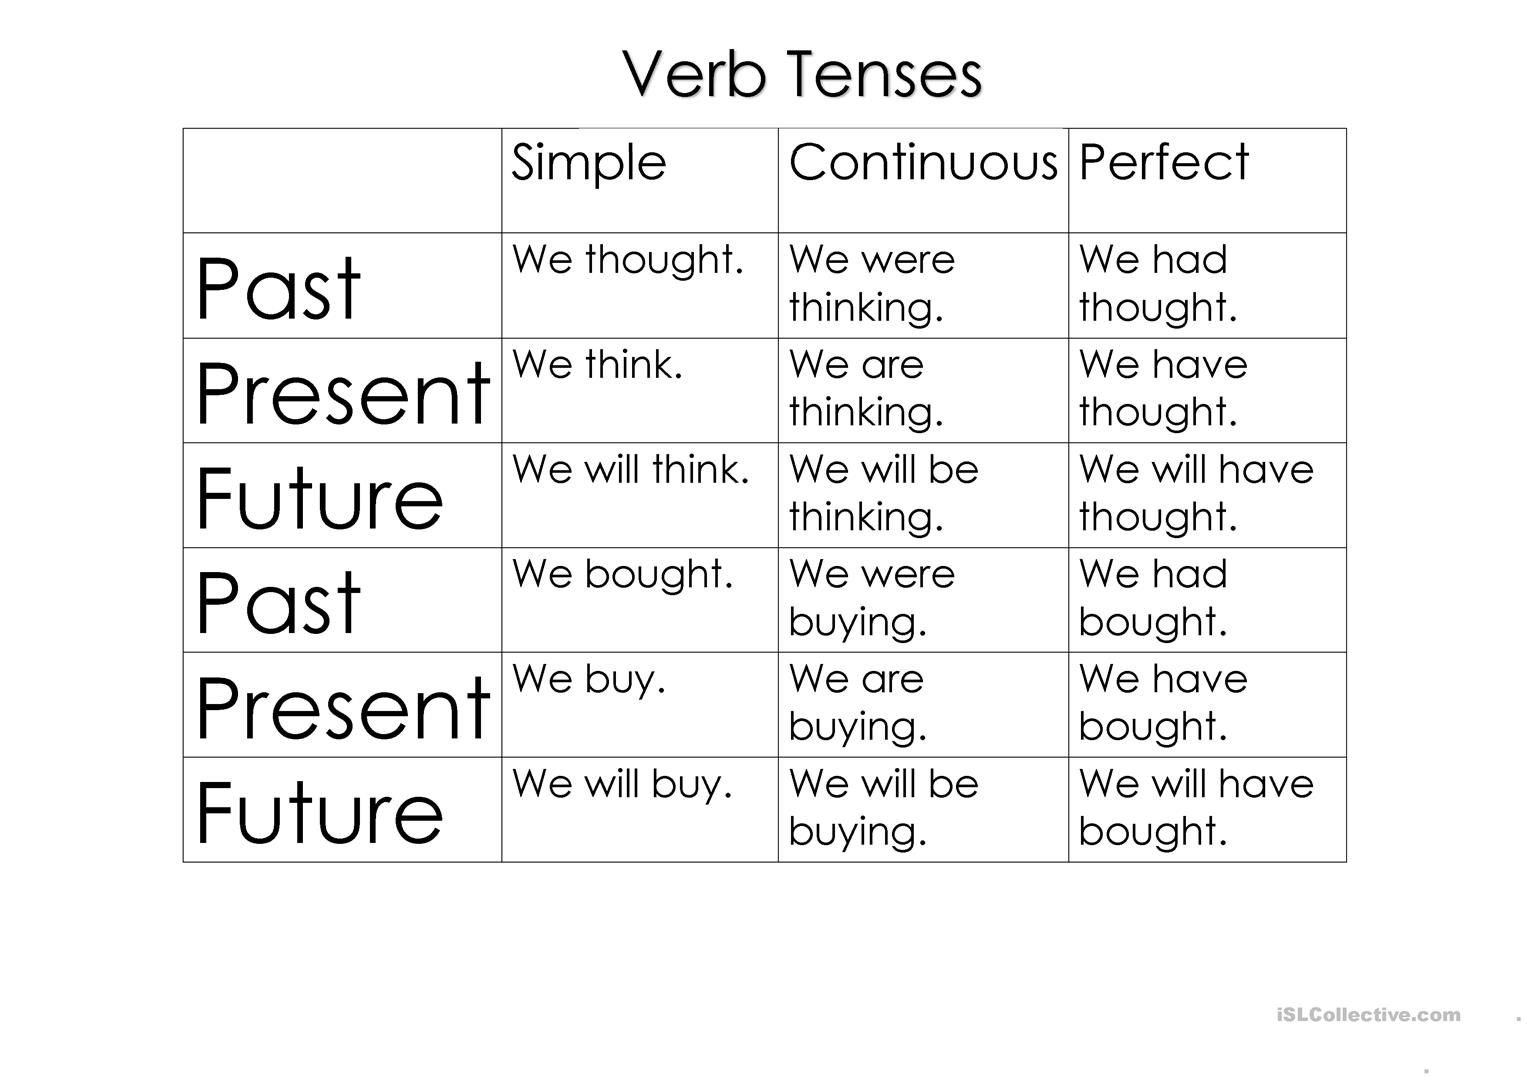 Verbs Tenses And Sentence Structure